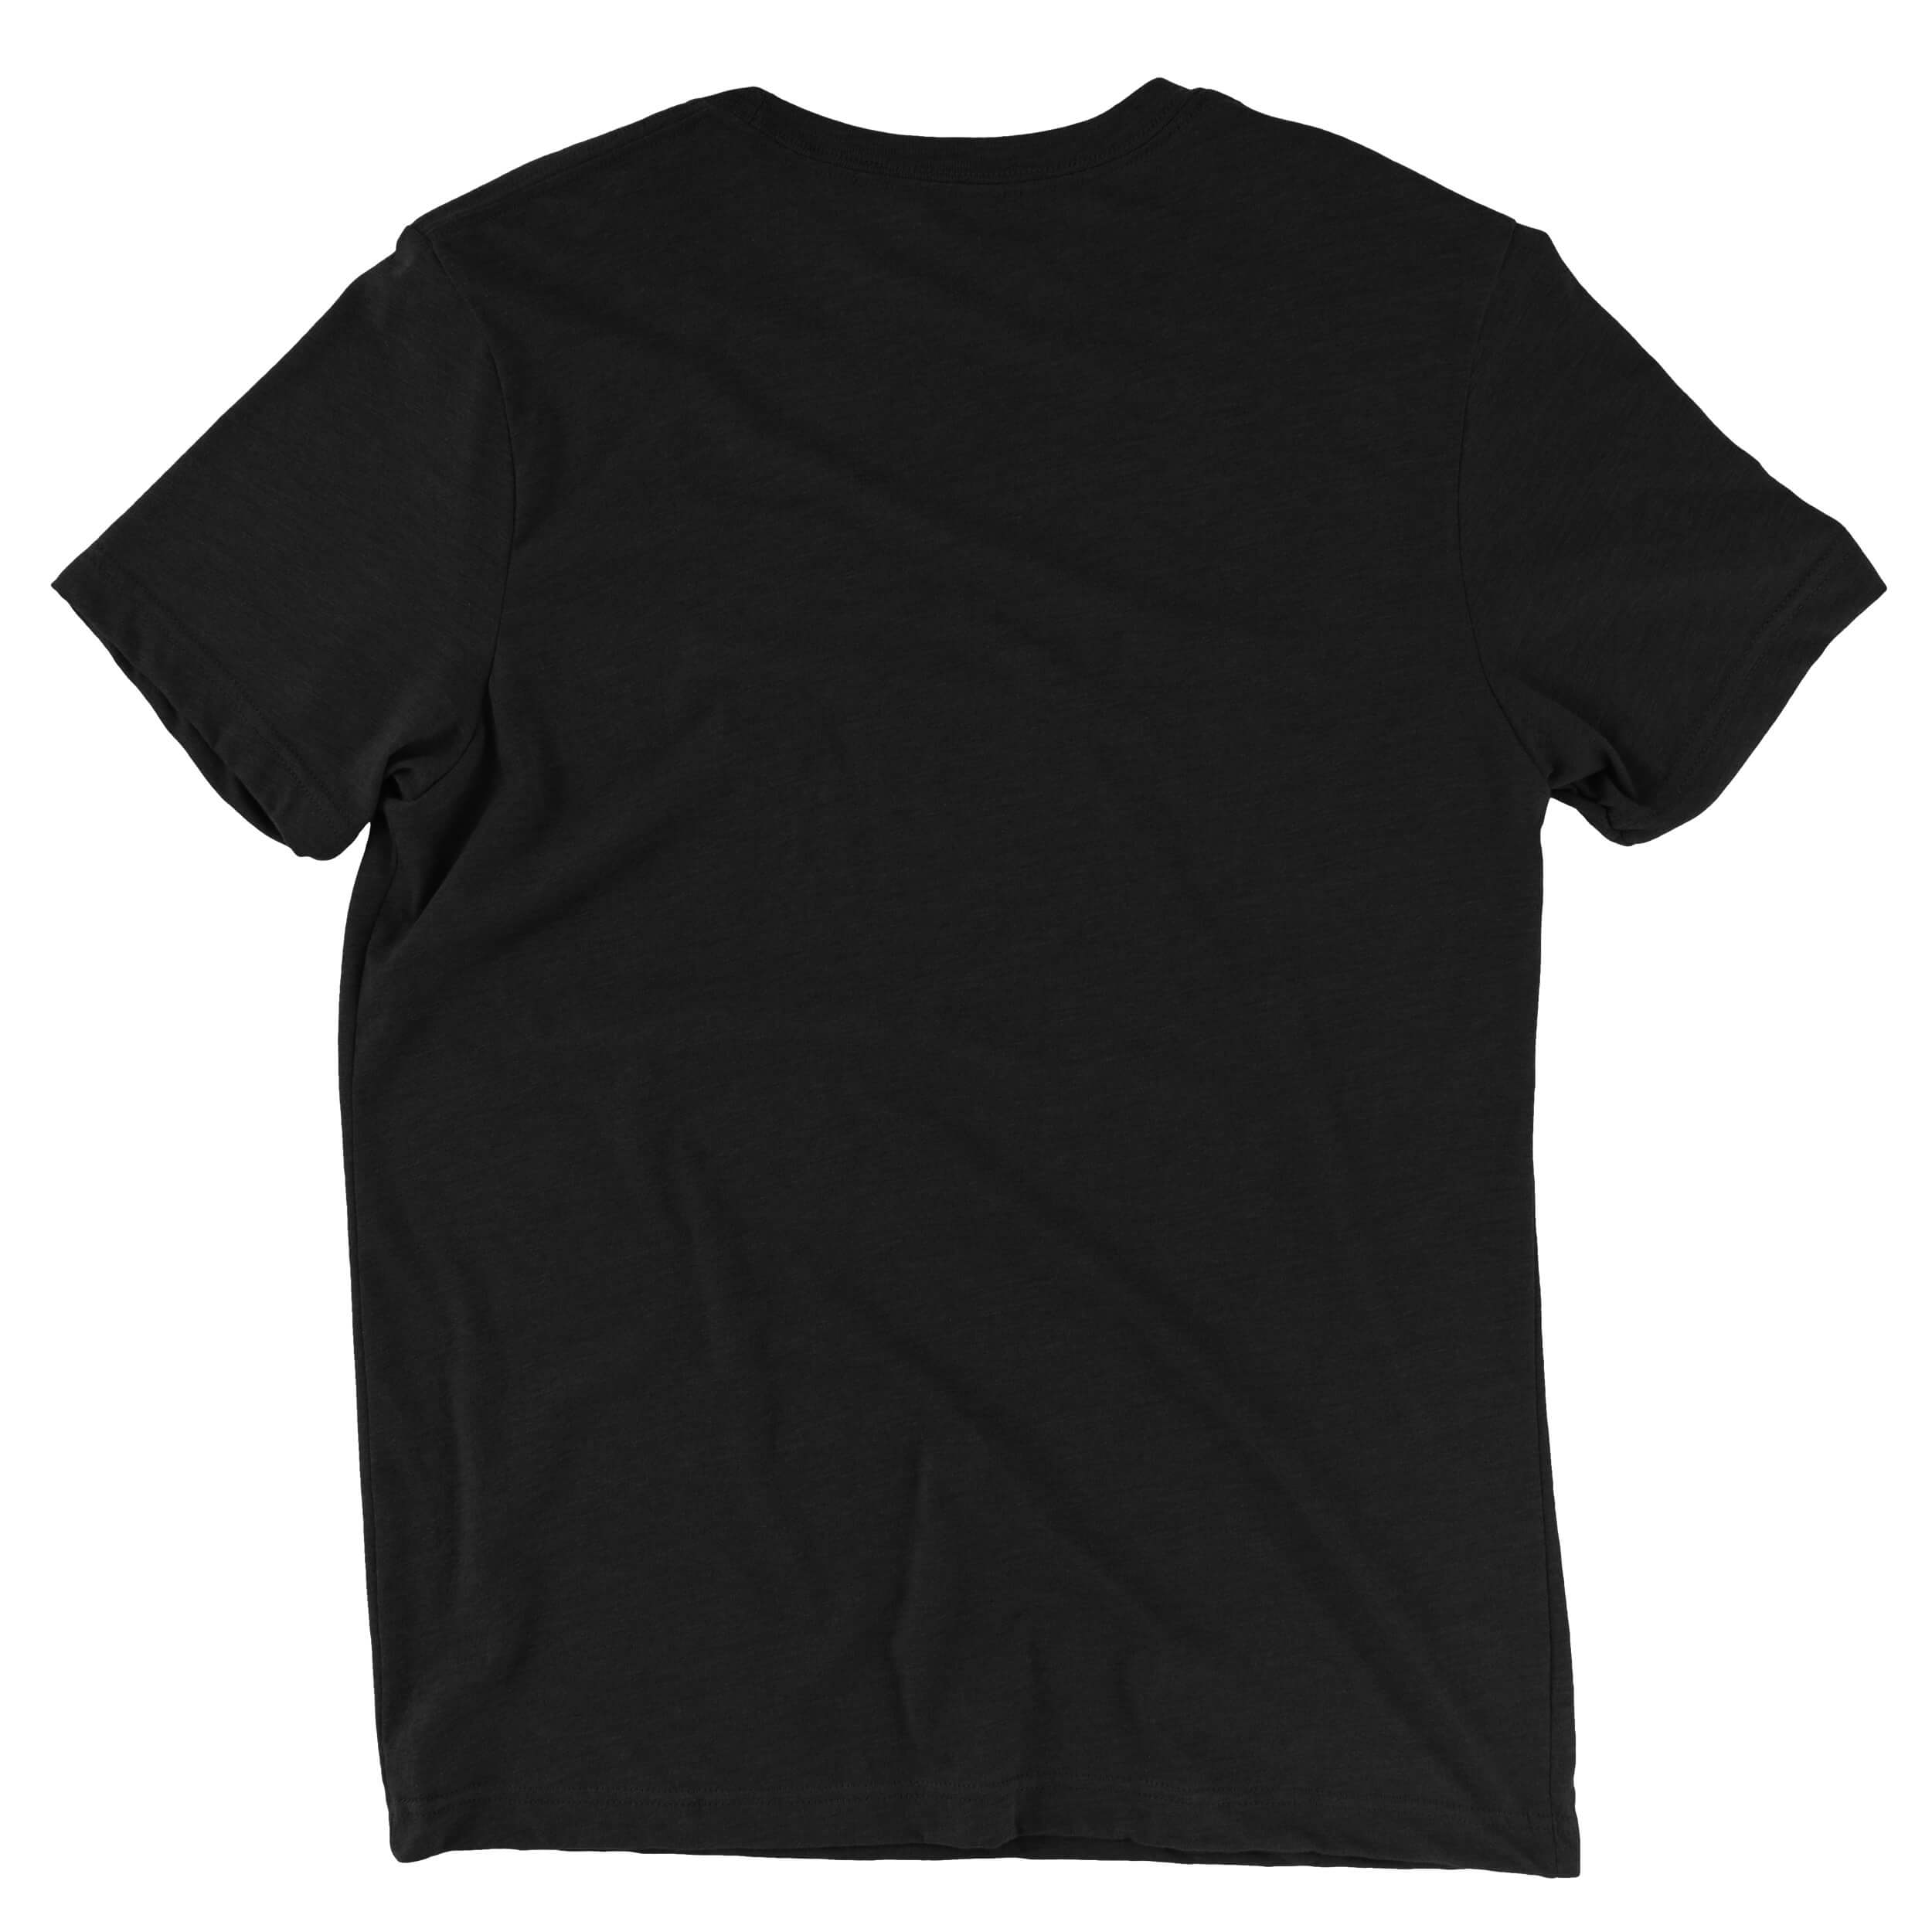 Free Prison Mike Statement Tee